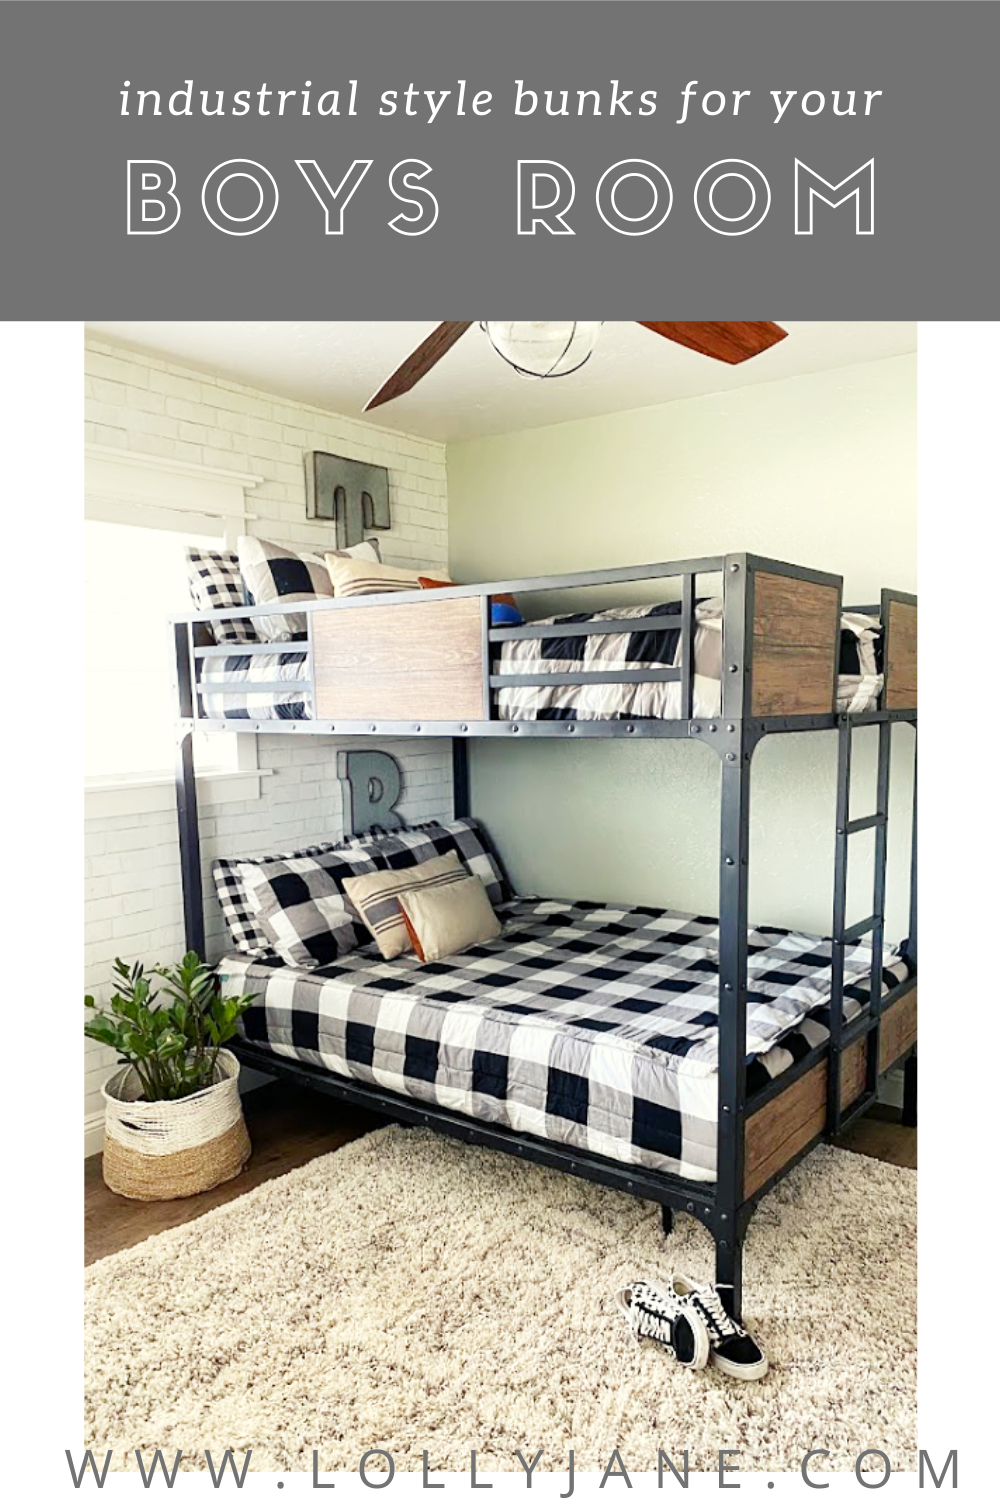 Industrial style bunk beds for your boys shared bedroom. Sturdy and stylish! #boysroom #sharedboysroom #bunkbedforboys #industrialbunkbeds